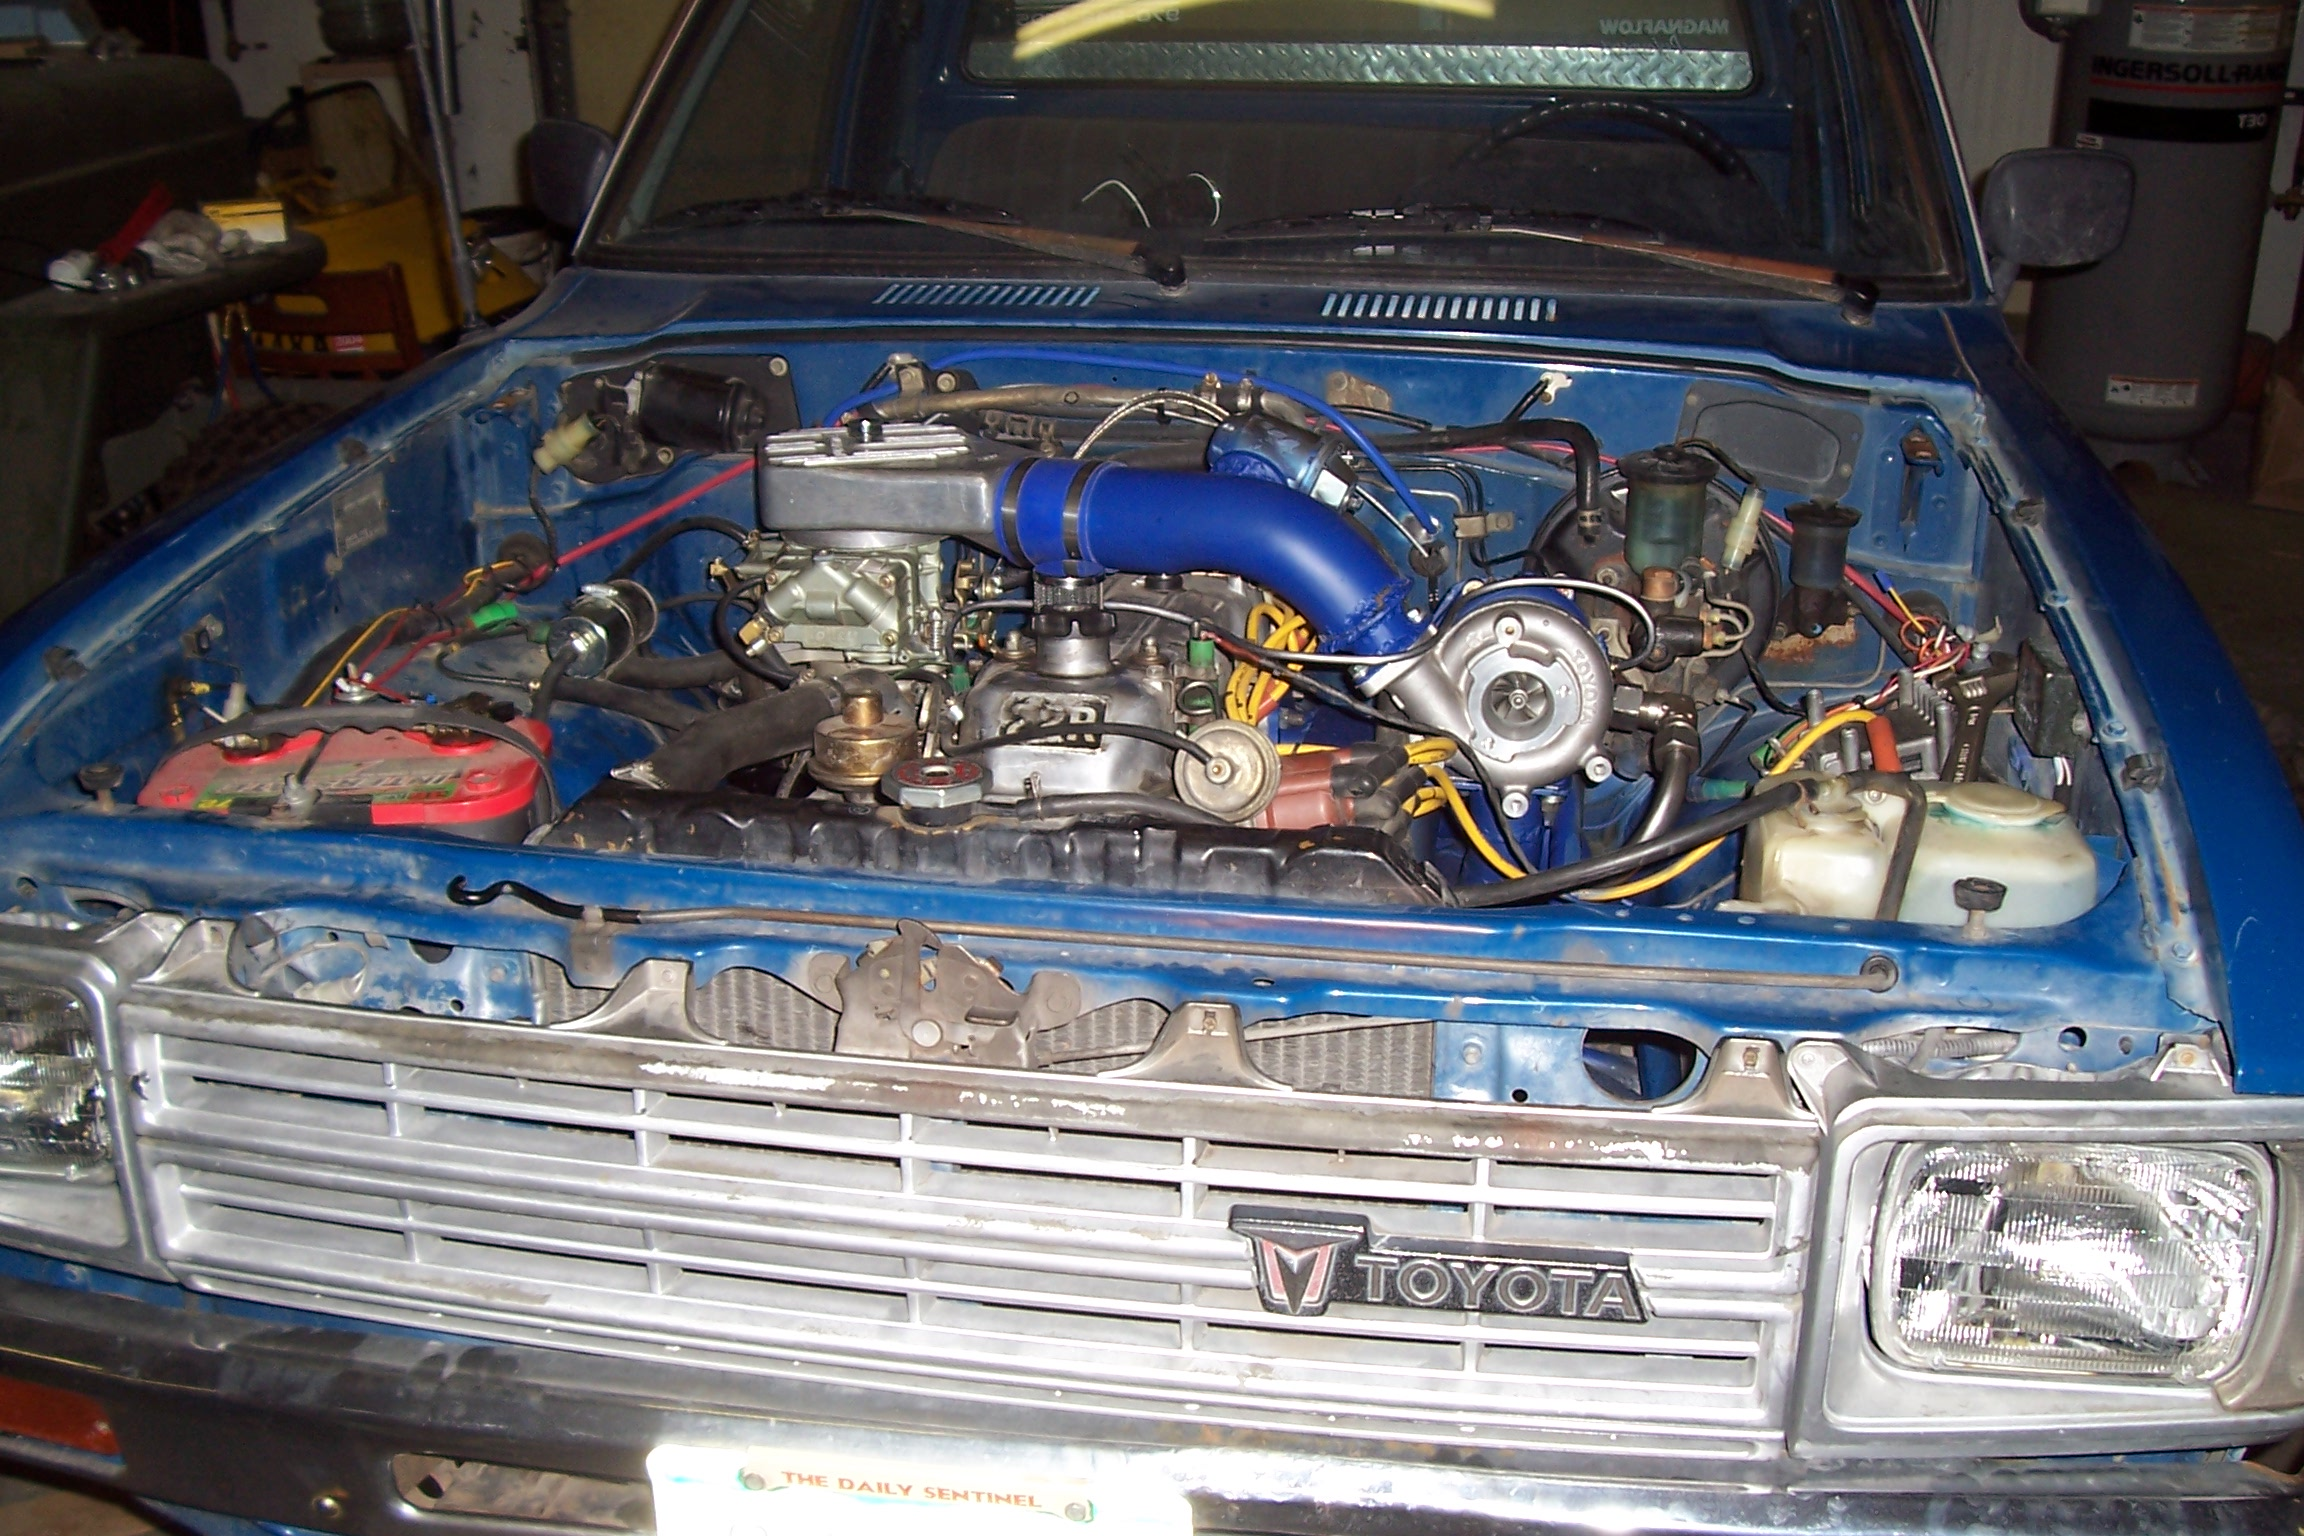 Pin 22re Vacuum On Pinterest Images Of Home Design Toyota 22r Diagram 22rte Diagrams Pirate4x4com 4x4 And Off Road